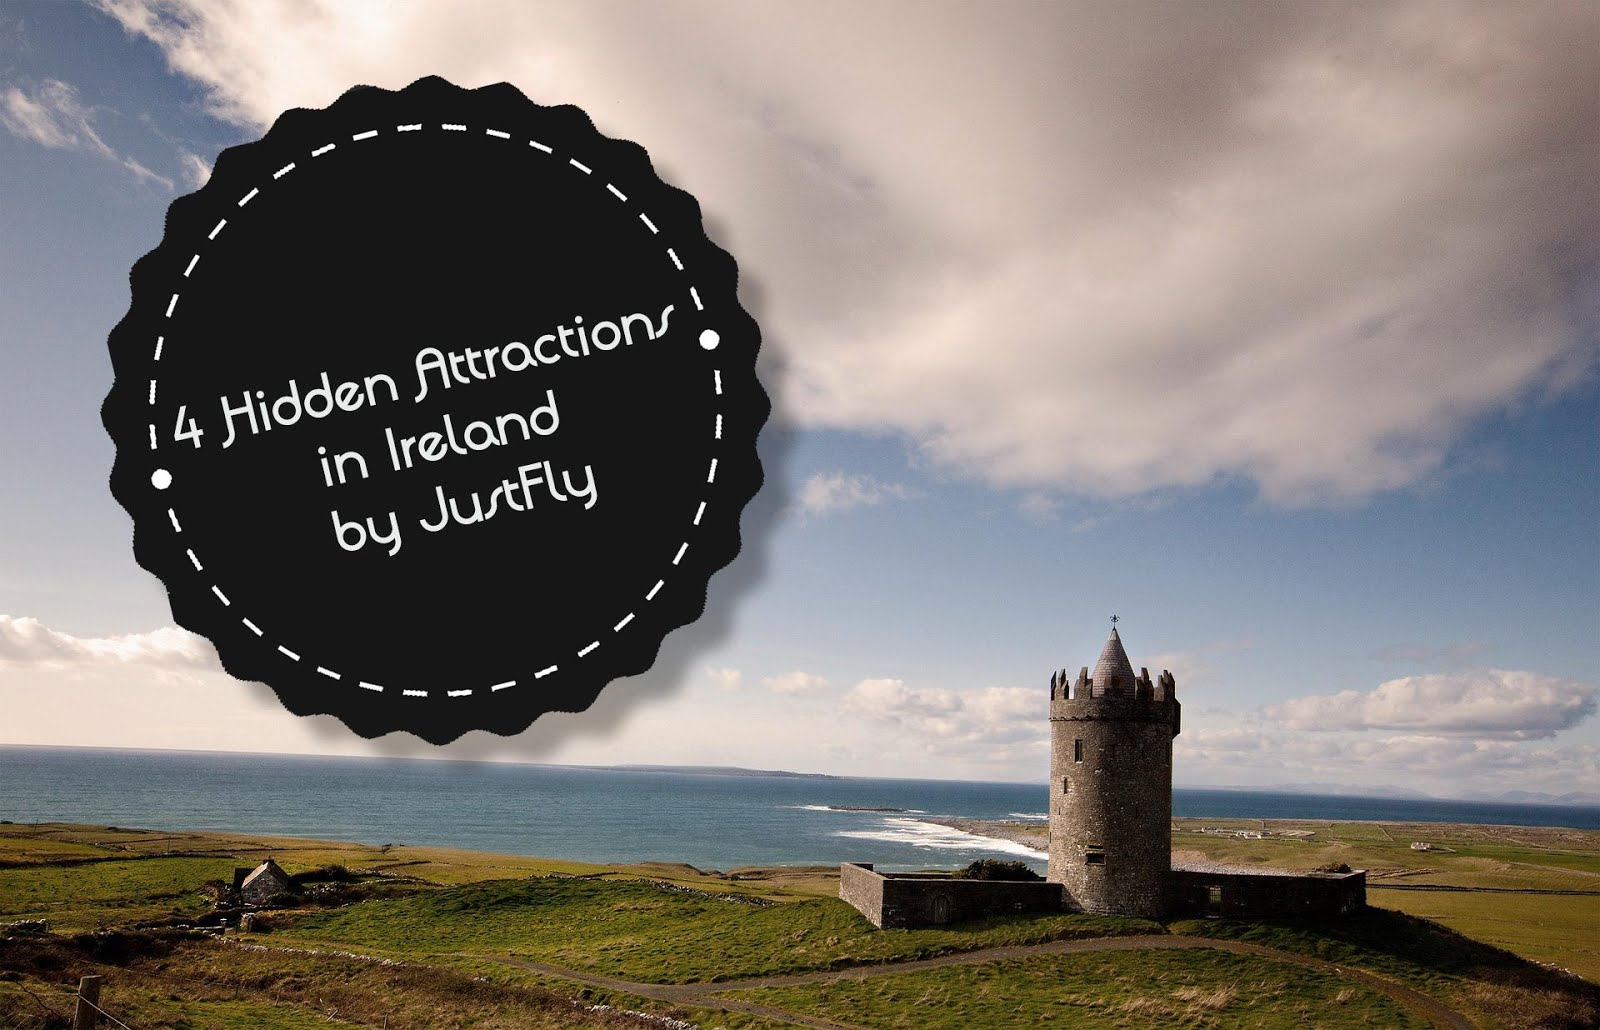 4 hidden attractions in Ireland